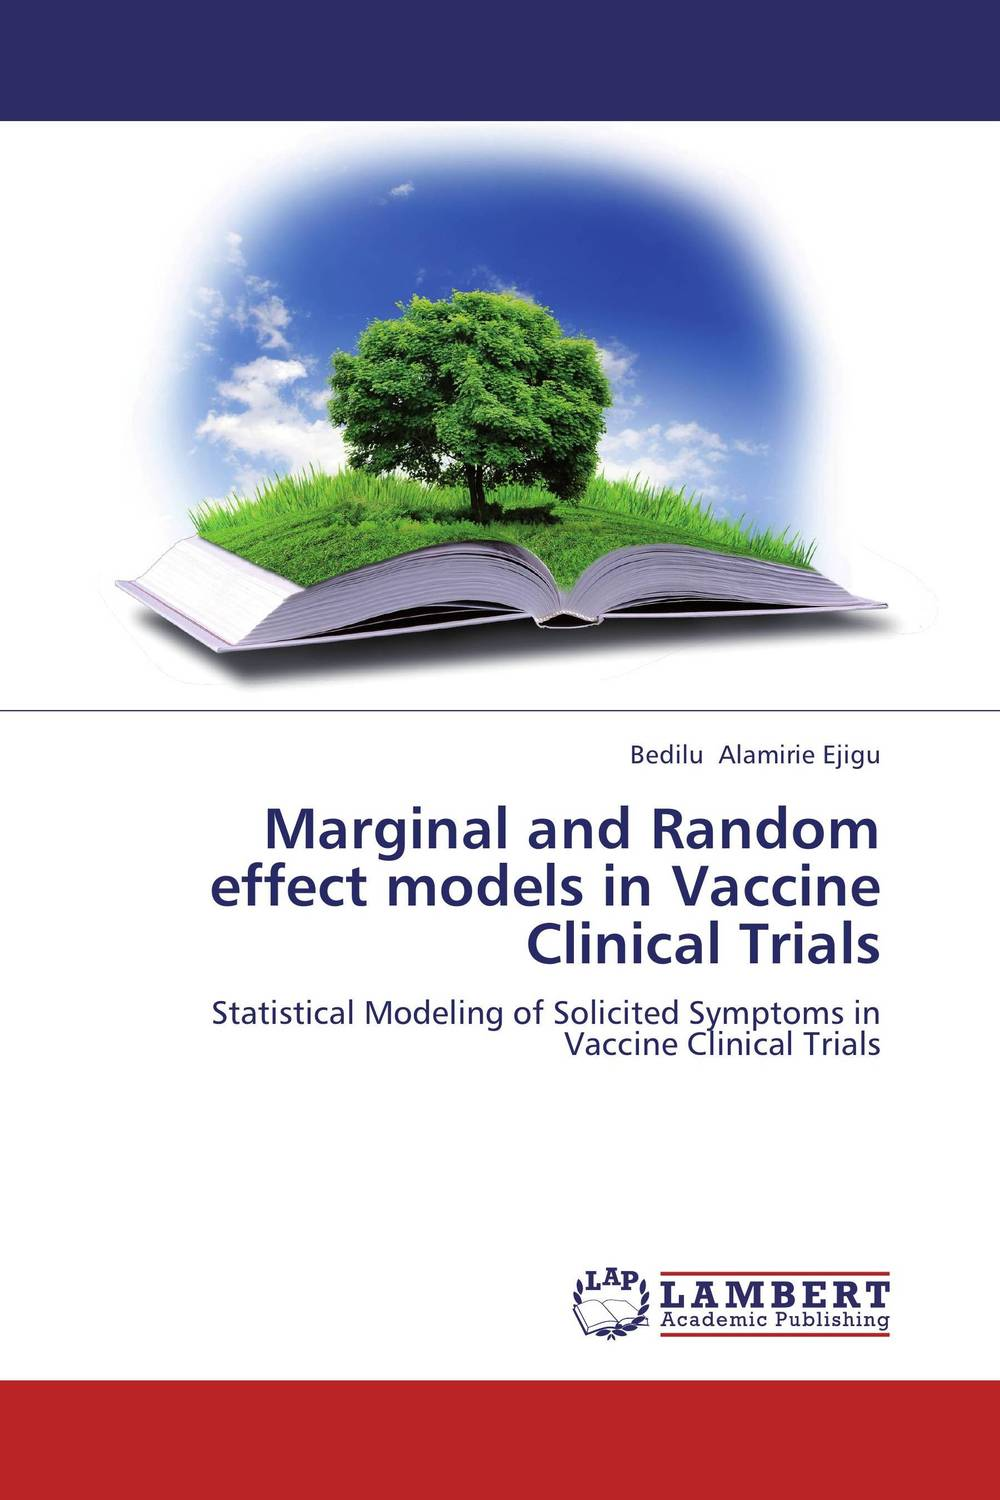 Marginal and Random effect models in Vaccine Clinical Trials the effect of model essays